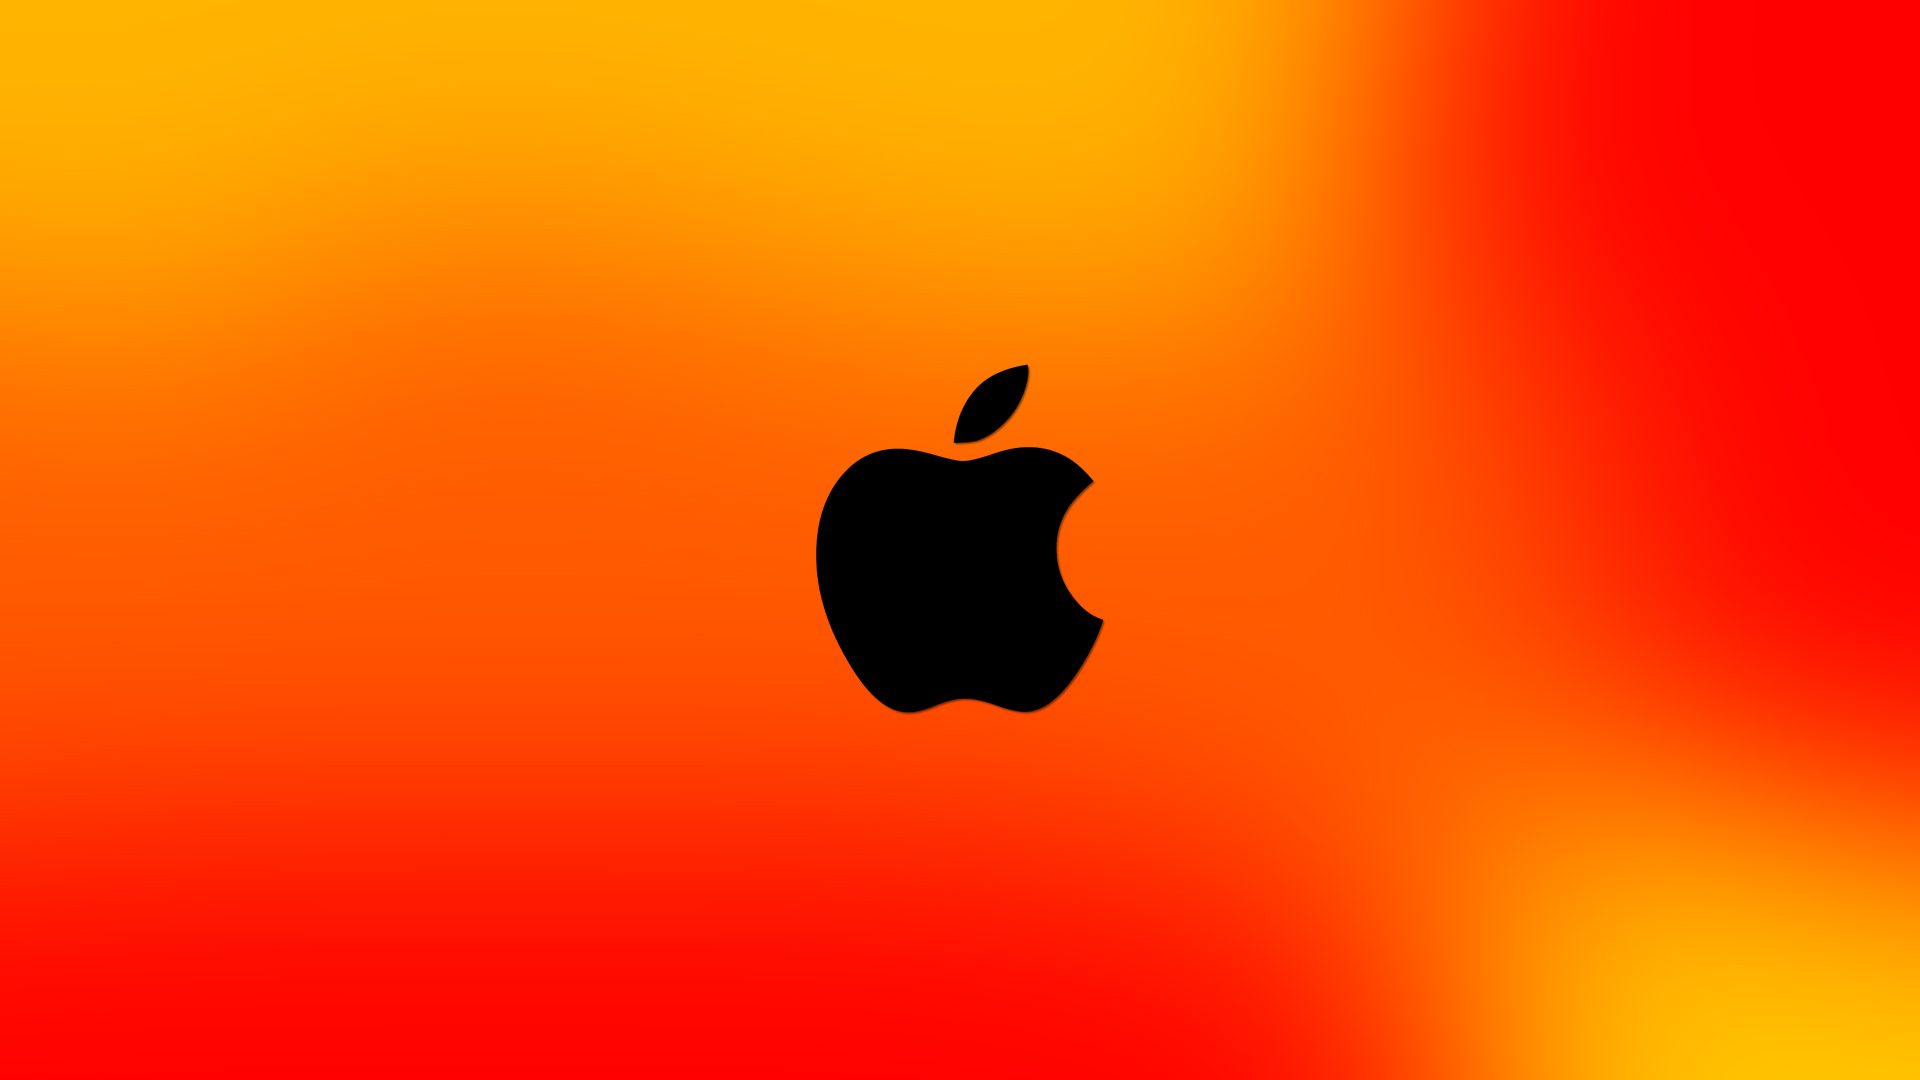 Apple Orange HD Image Wallpaper